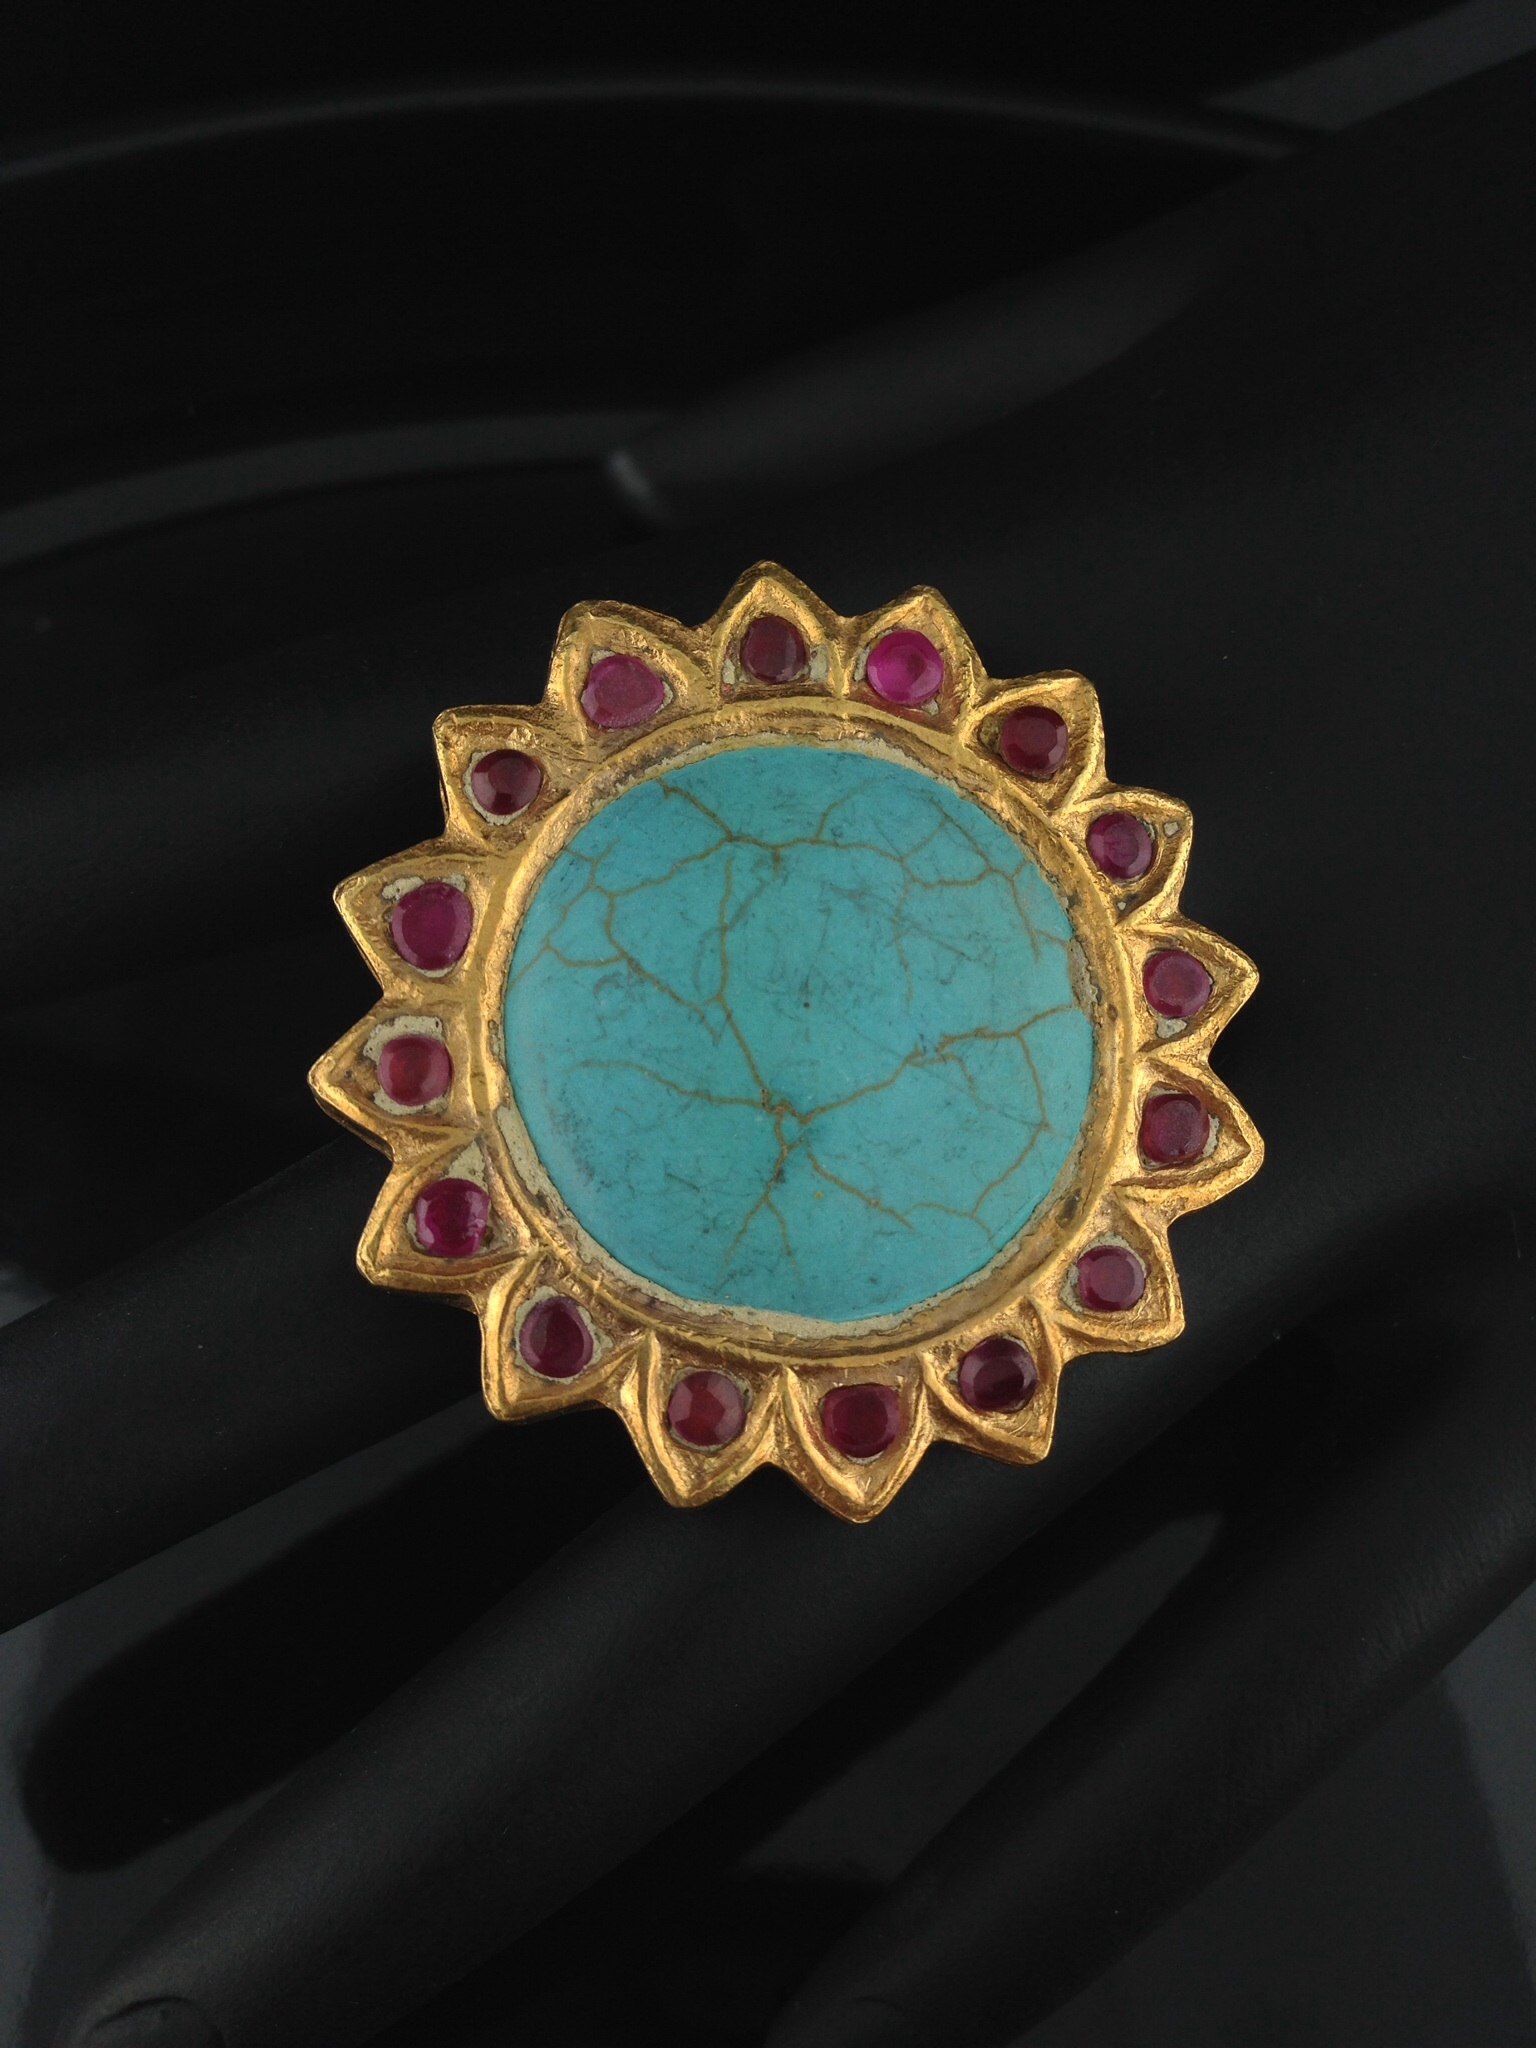 Adjustable Kundan Rings with Turquoise and Rubies.